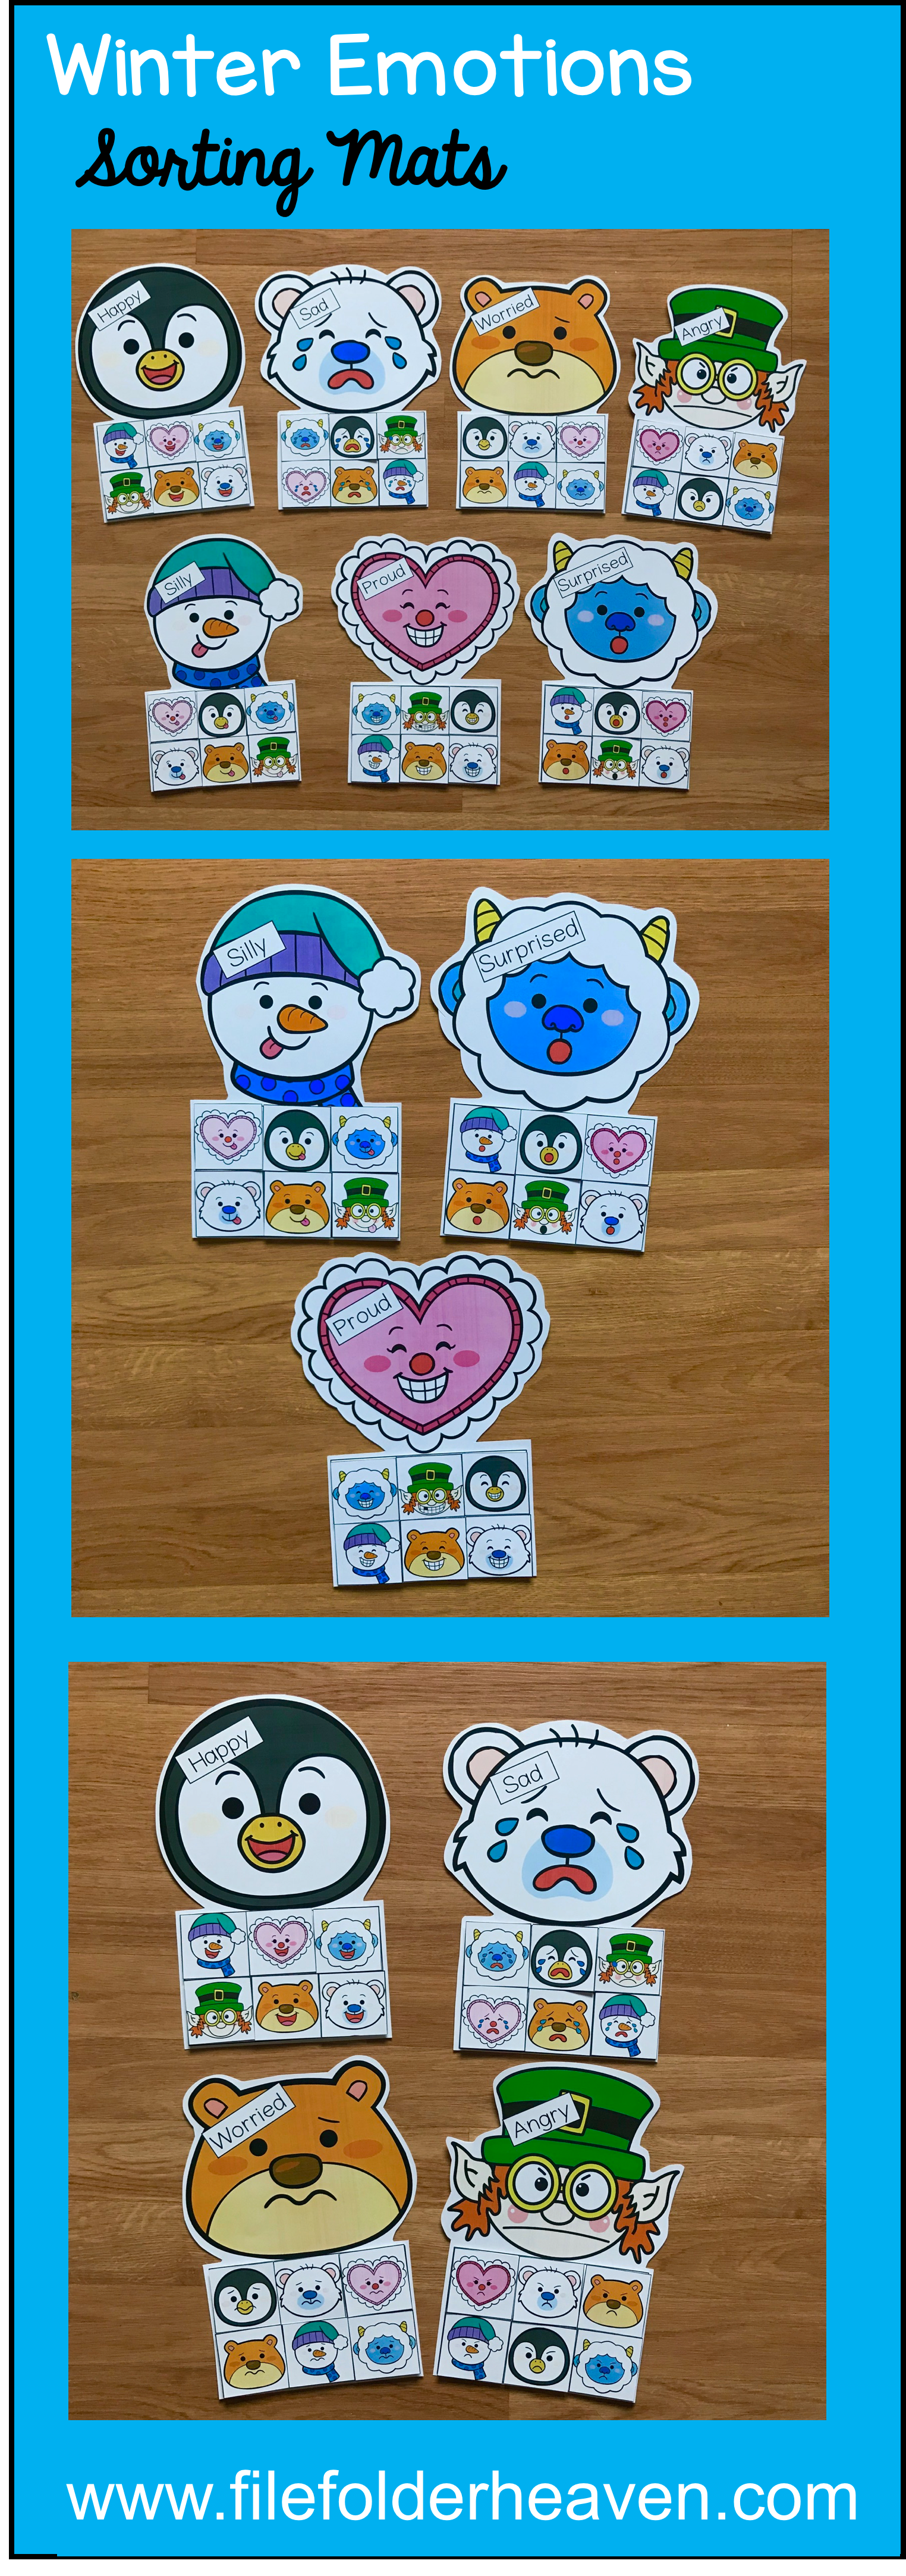 These Winter Emotions Sorting Activities Offer A Fun And